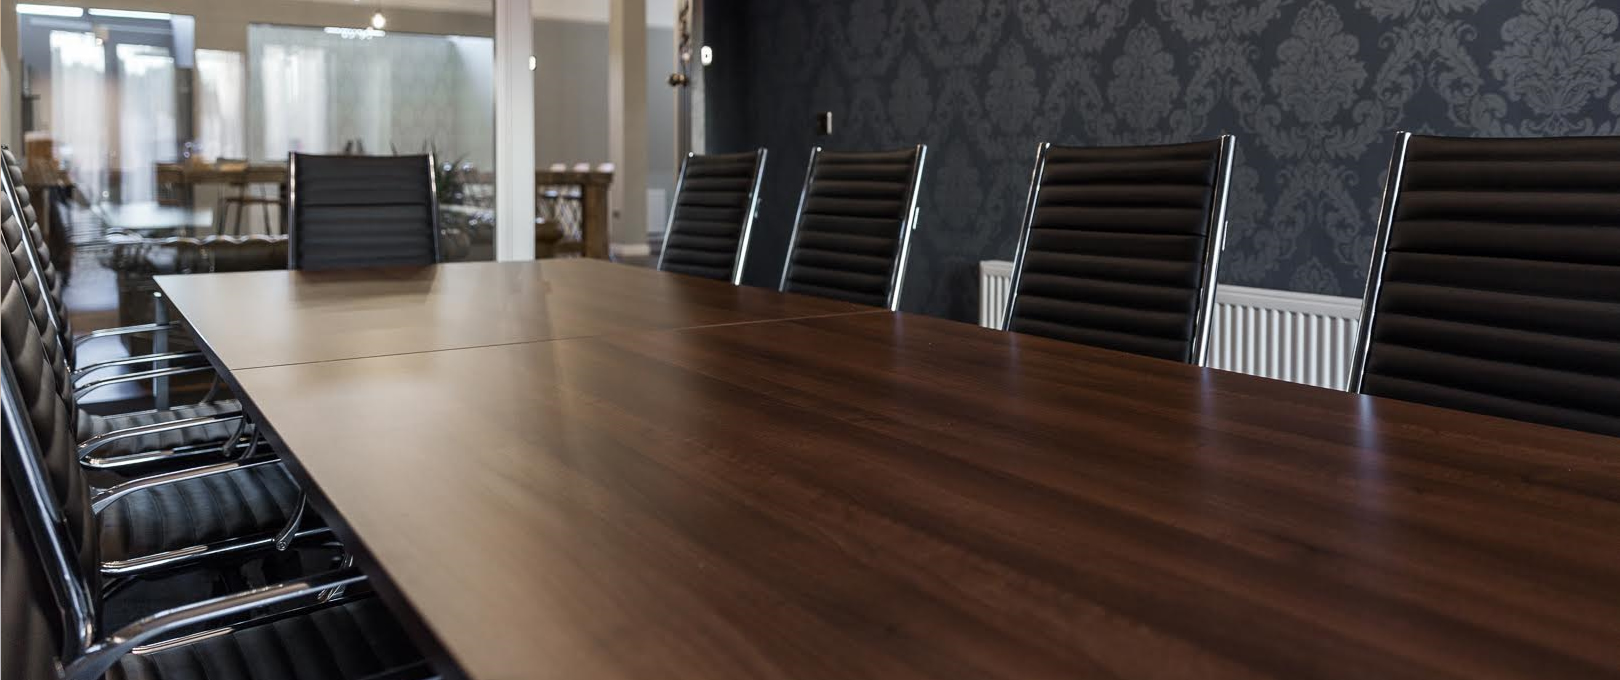 meeting-rooms-stockport